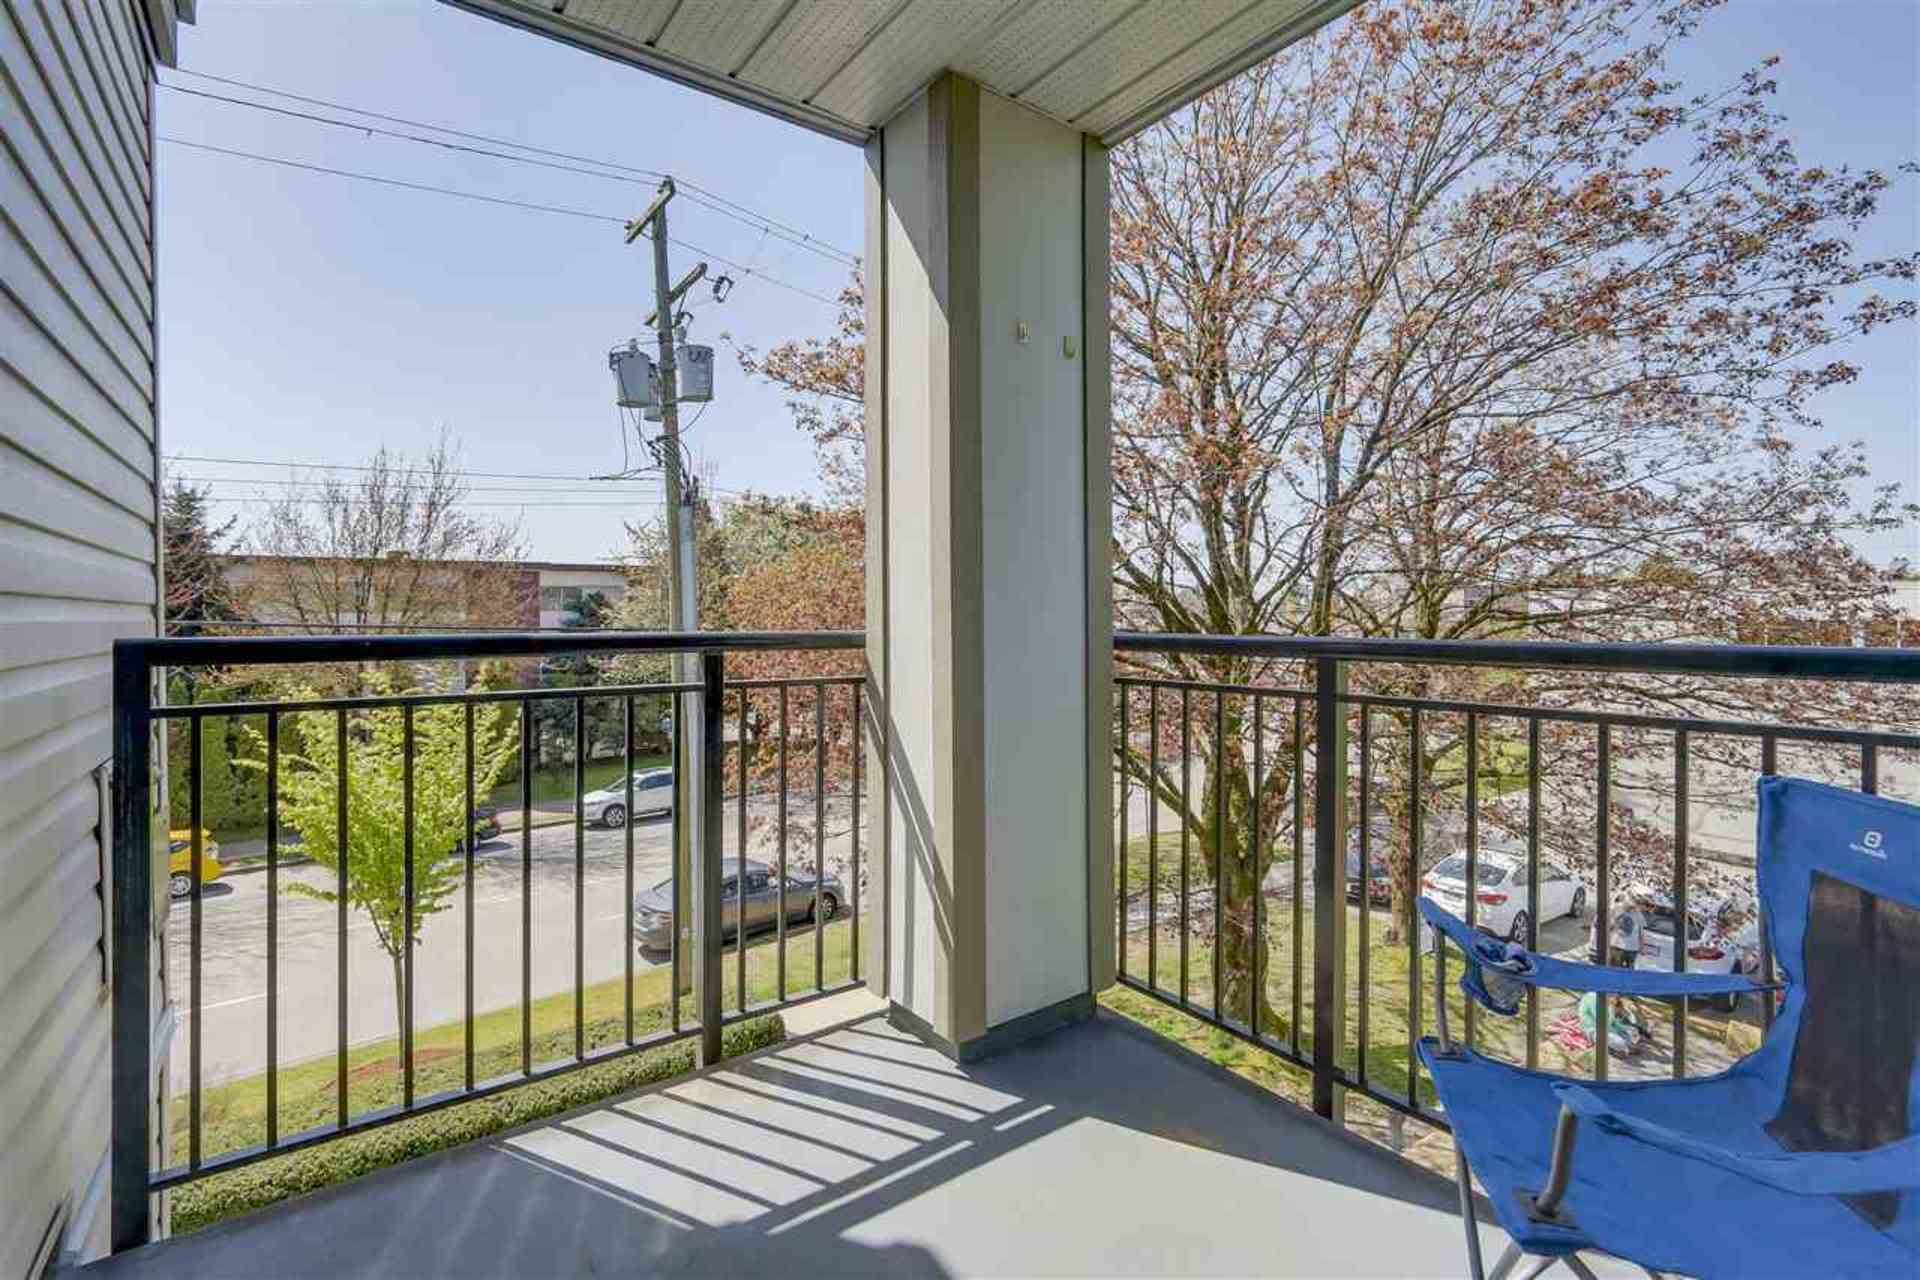 1445-w-70th-avenue-marpole-vancouver-west-05 at 301 - 1445 W 70th Avenue, Marpole, Vancouver West